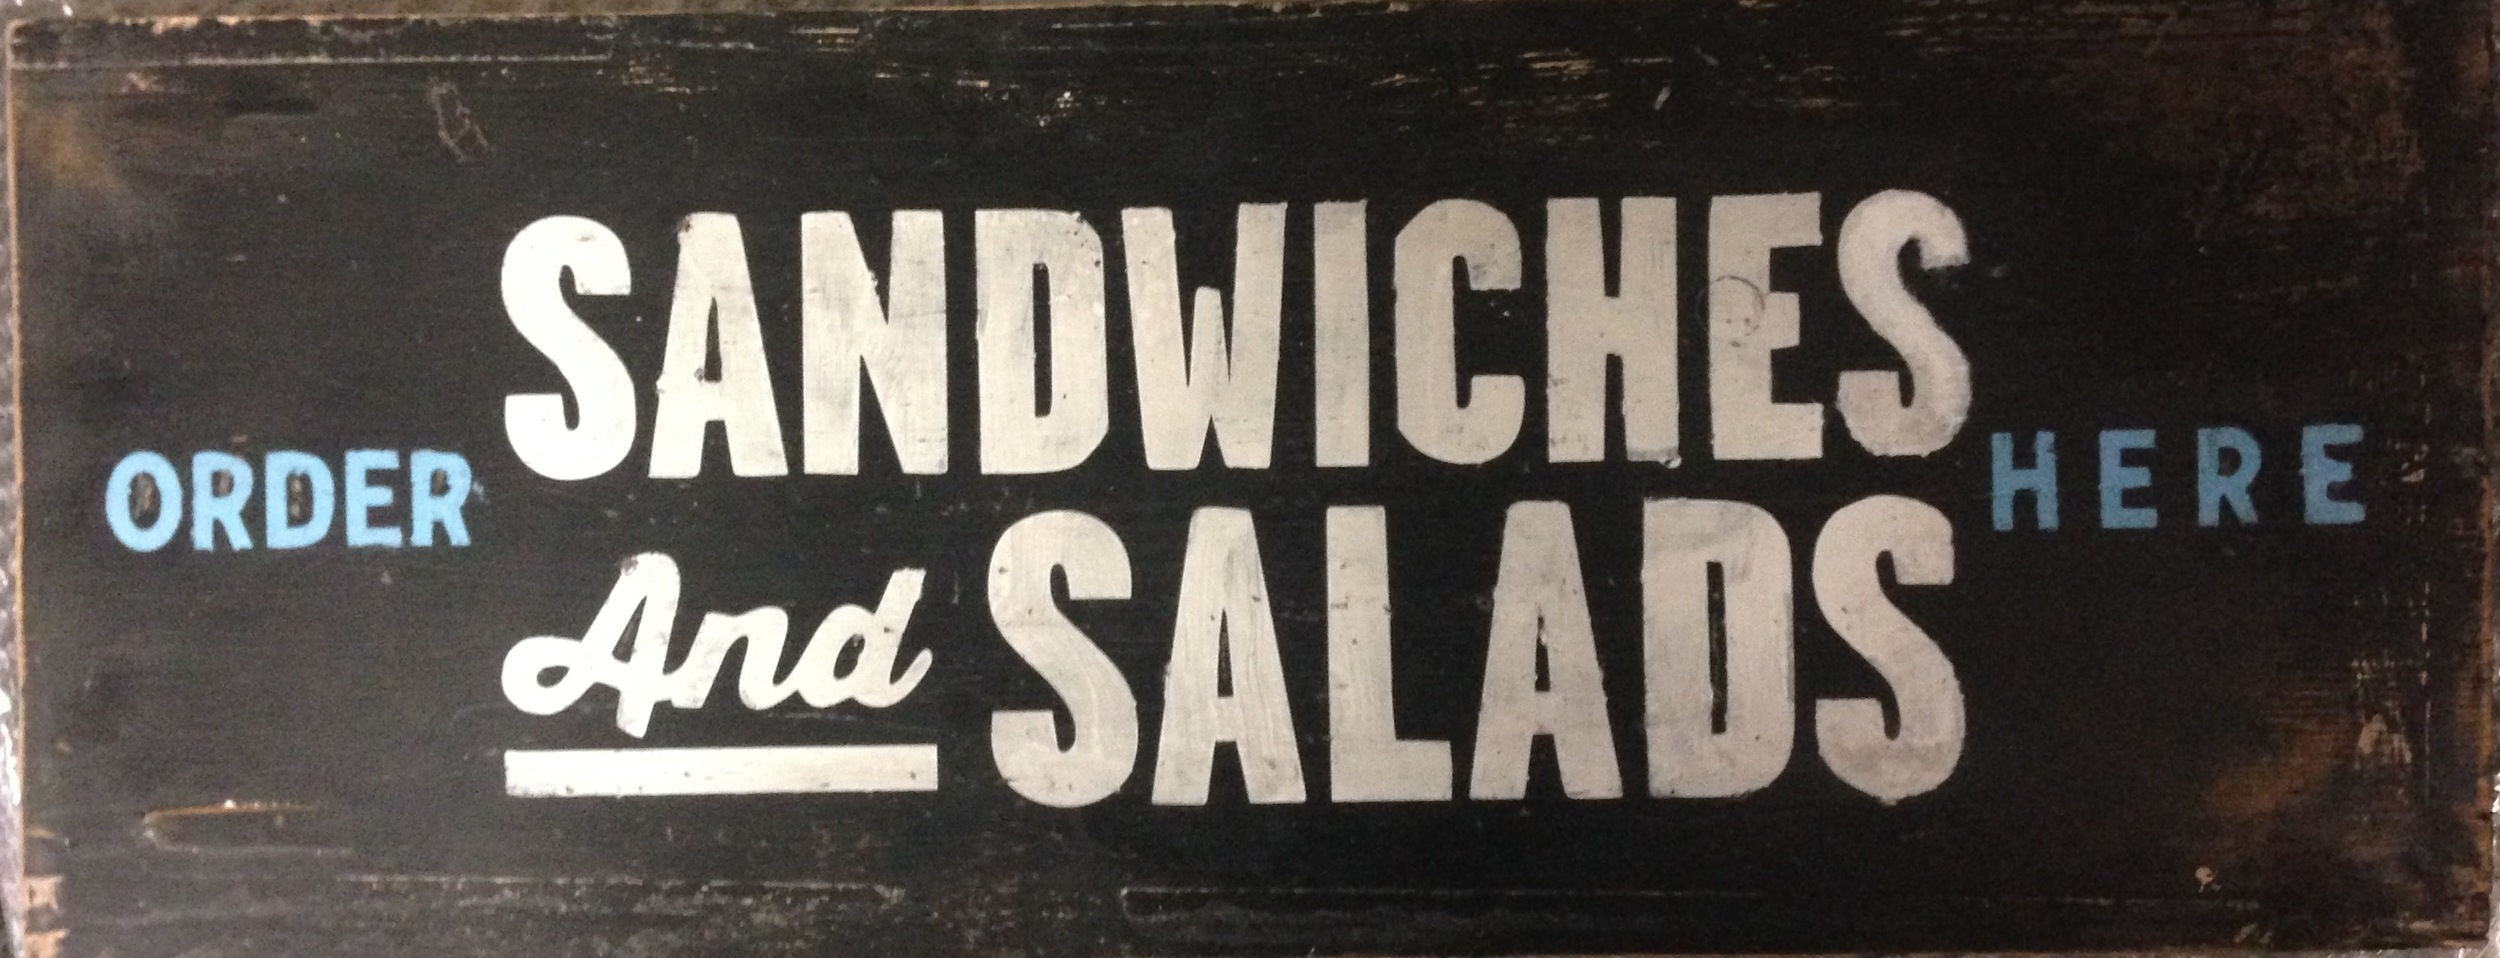 Sandwiches & Salads / Order Here